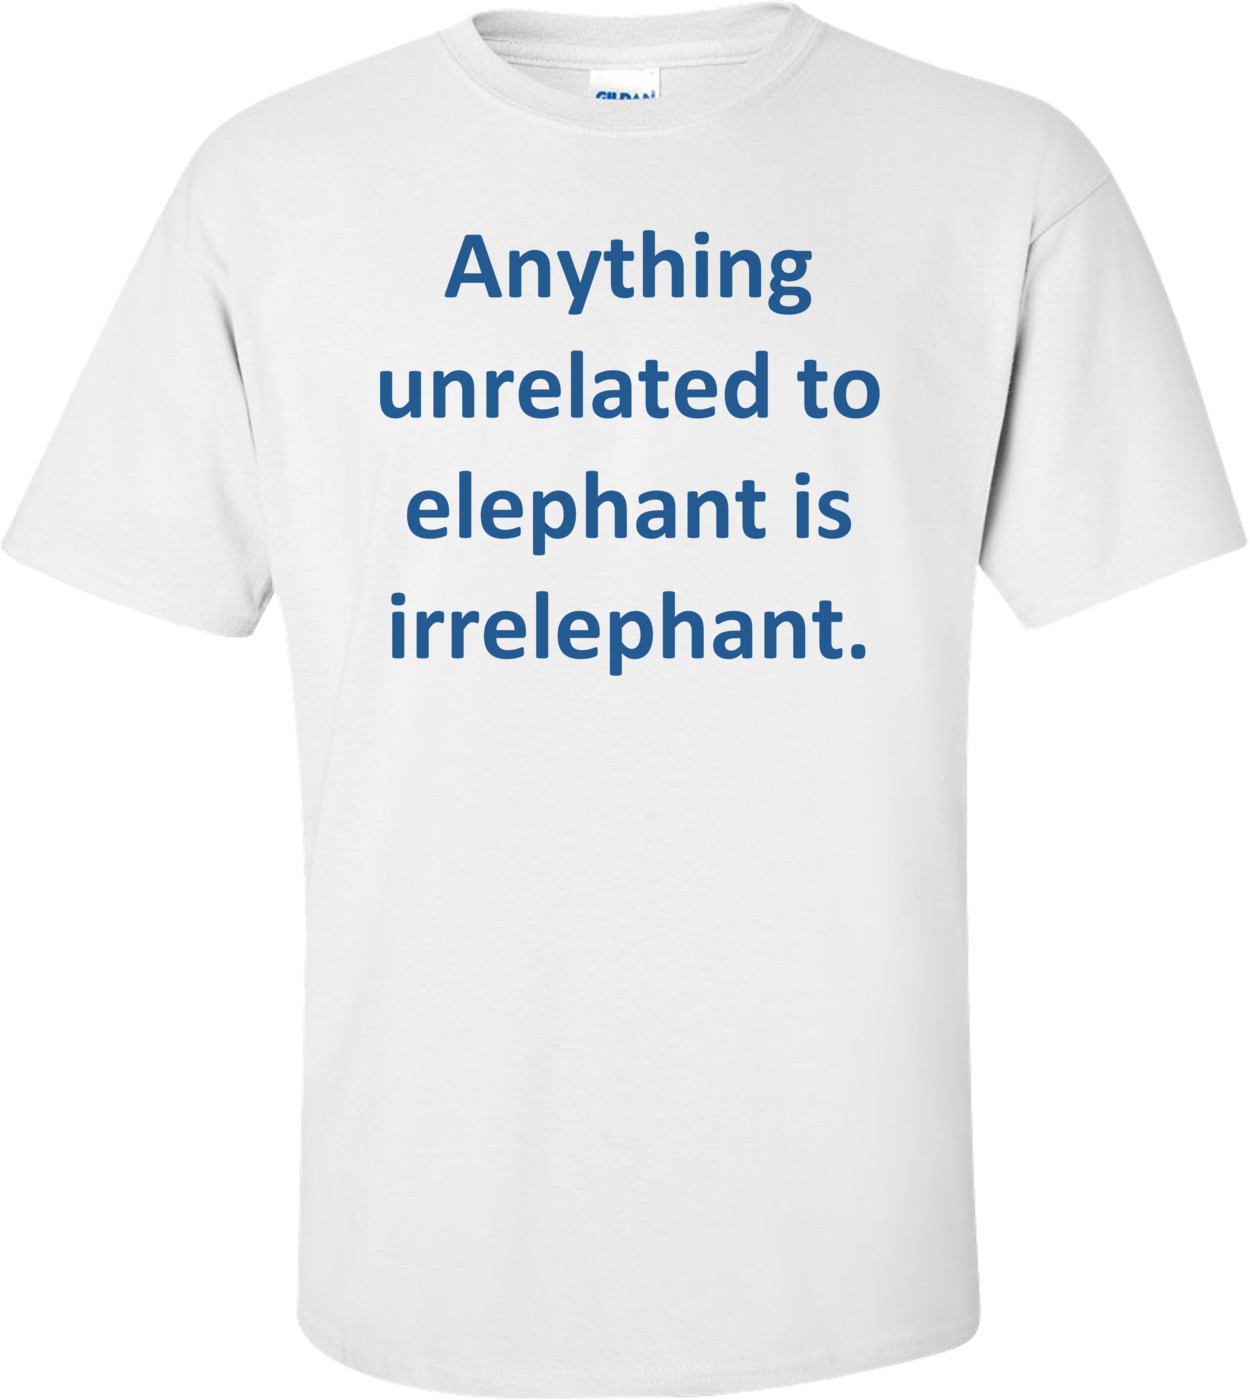 Anything unrelated to elephant is irrelephant. Shirt